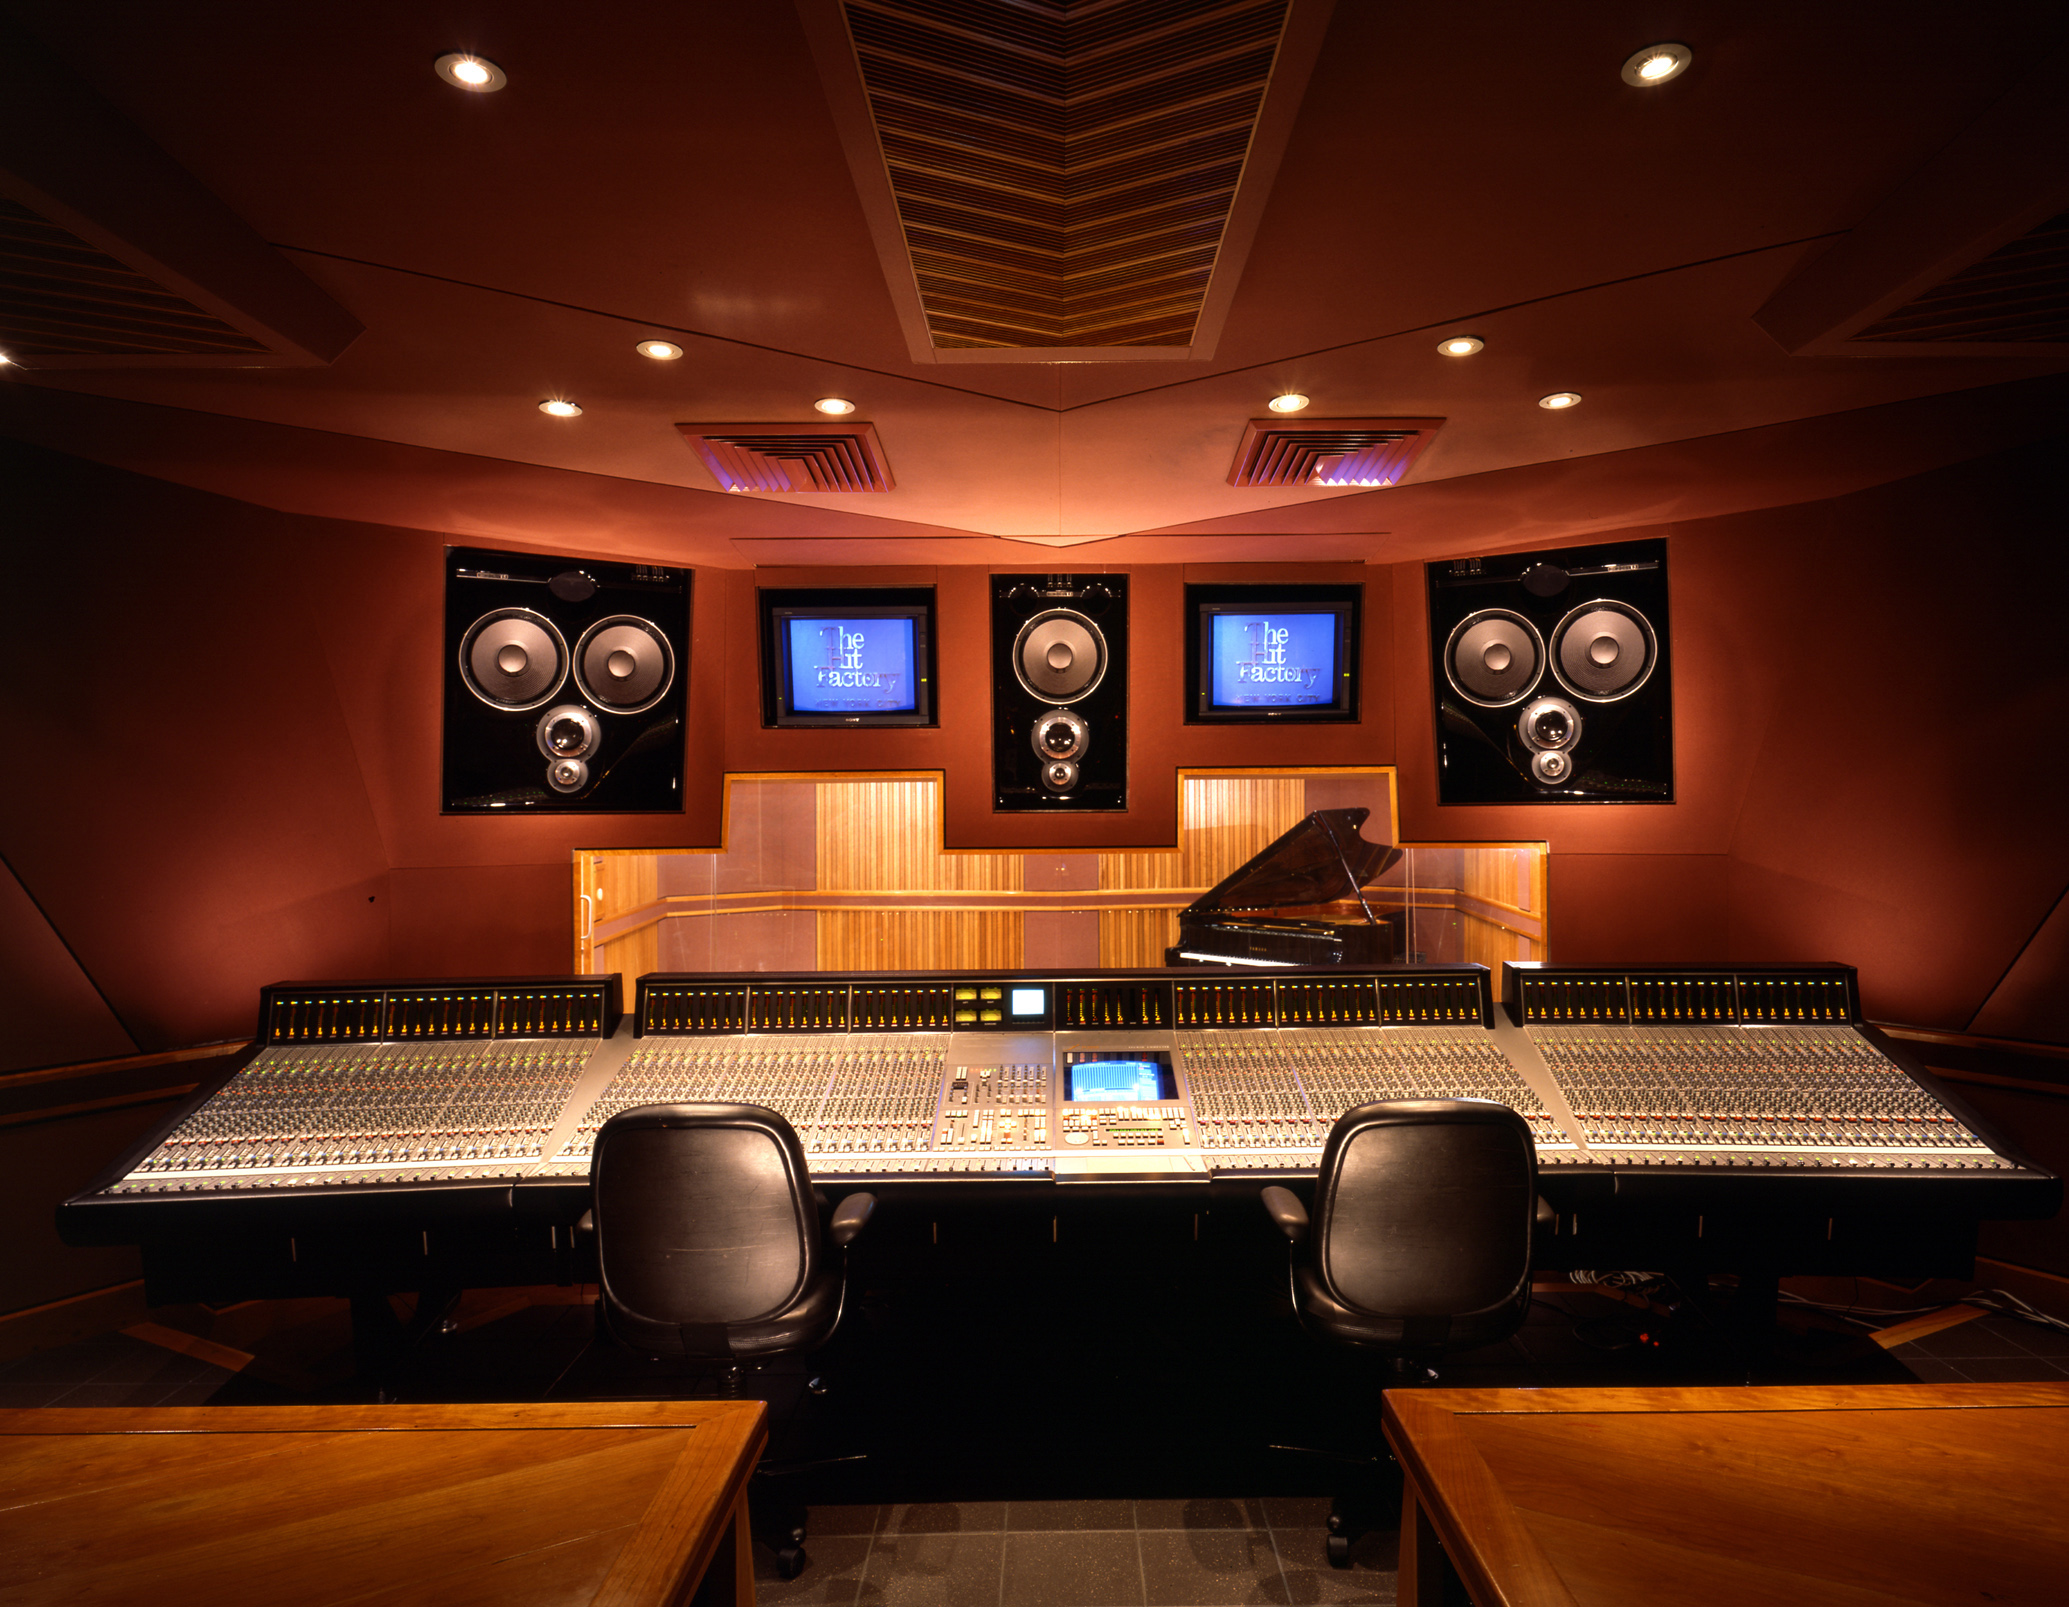 42 Hd Recording Studio Wallpaper On Wallpapersafari